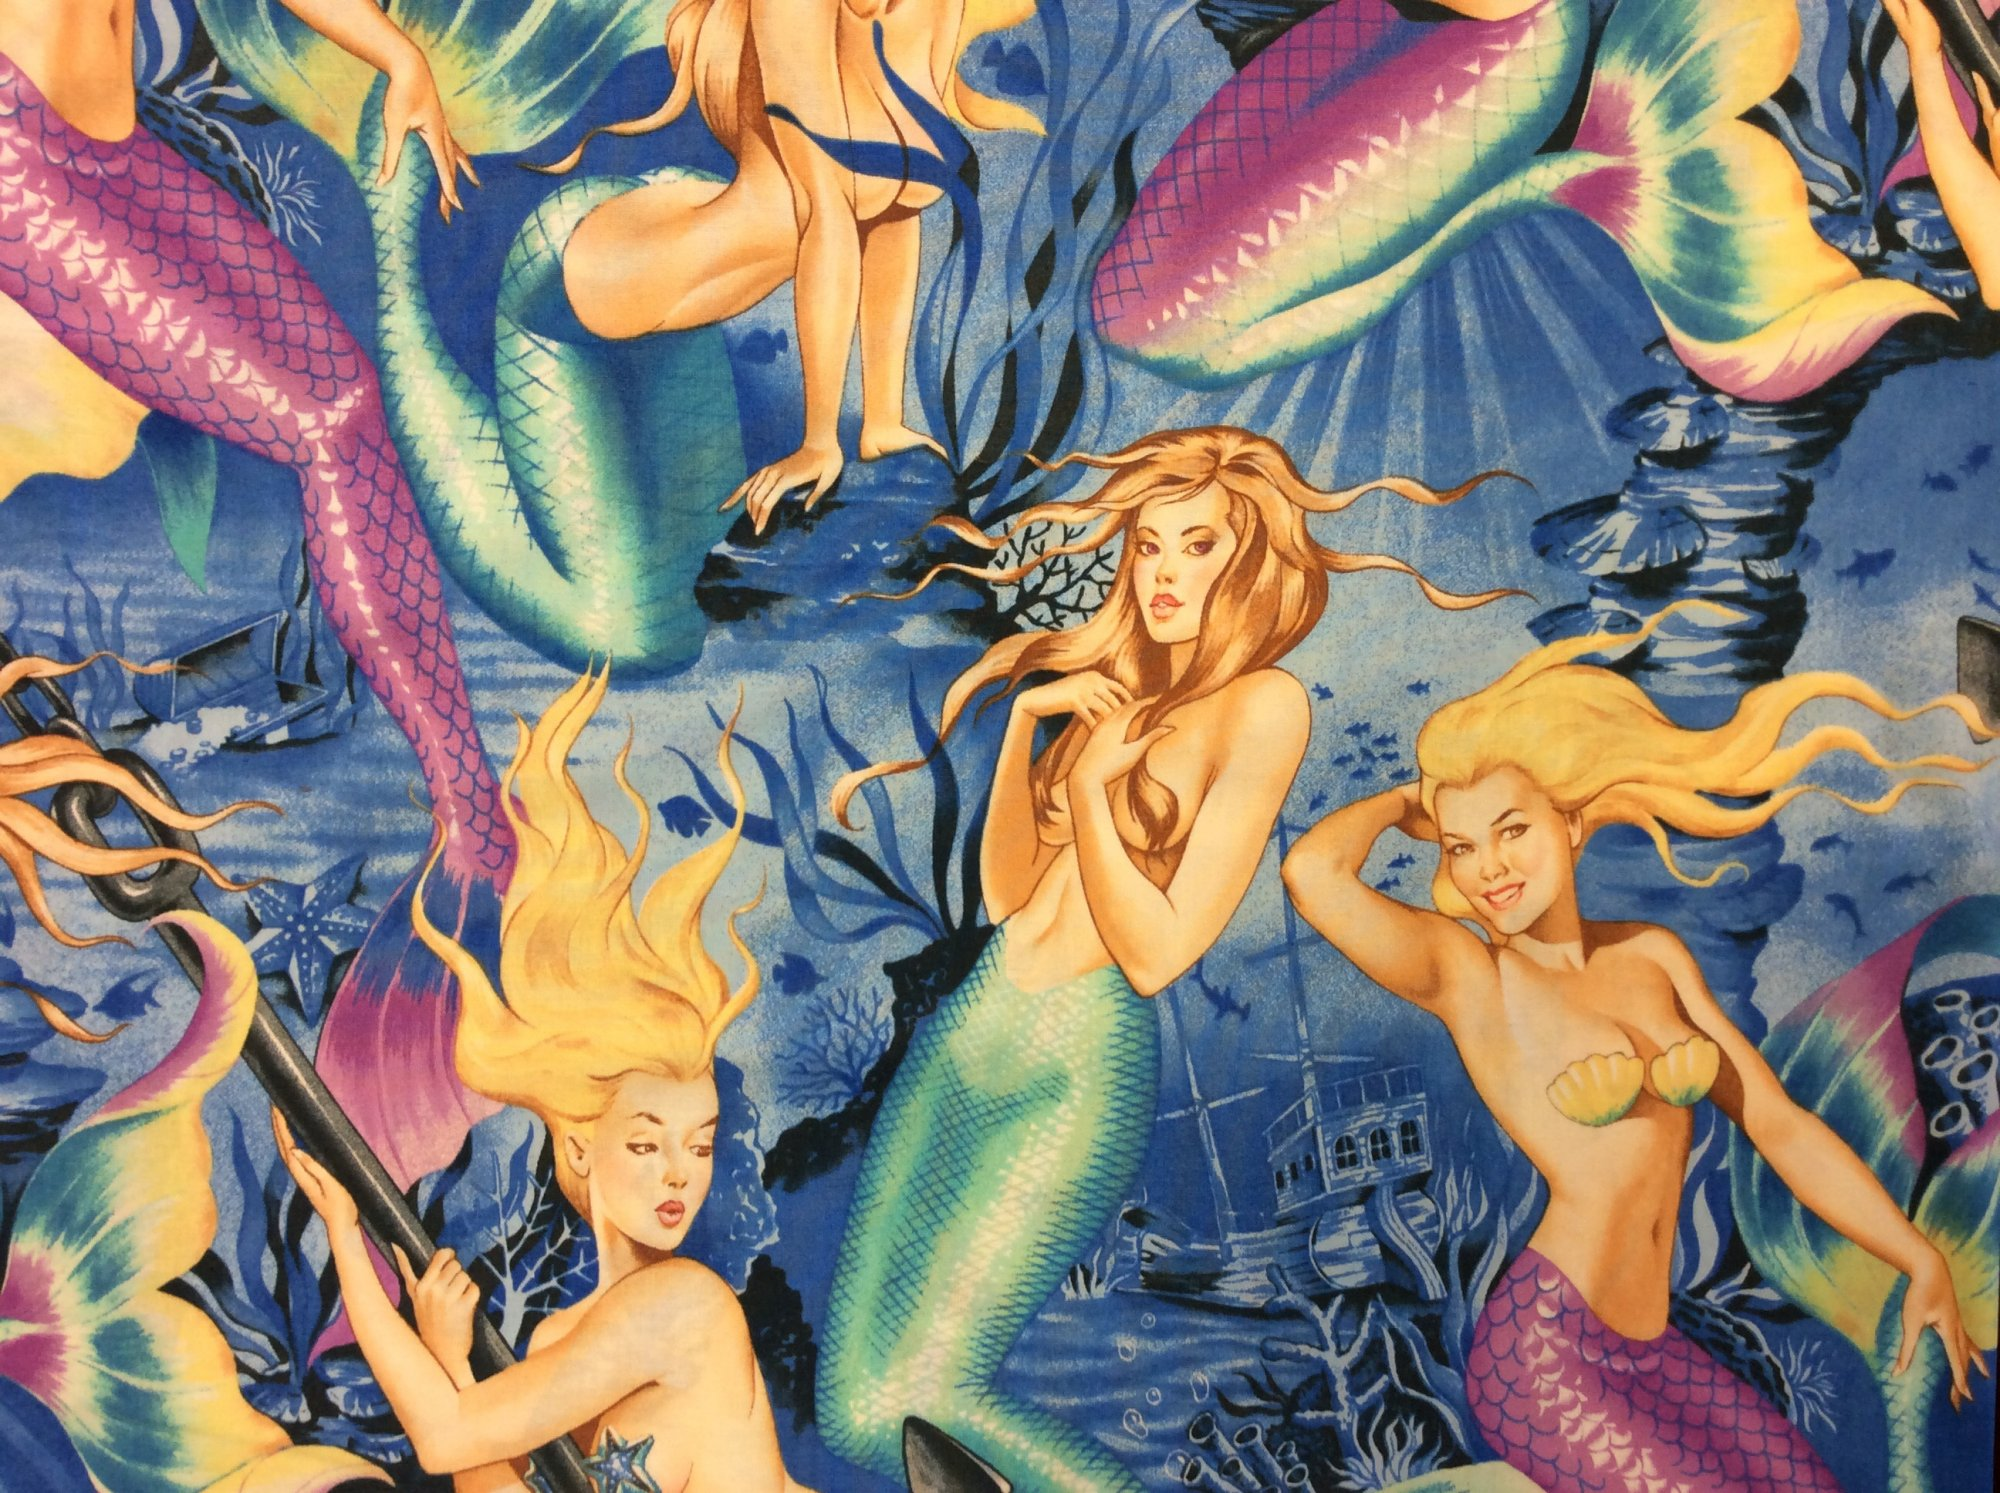 Sexy Pin Up Girls Sea Sirens Mermaid Hot Print Alexander Henry Cotton Fabric Quilt Fabric CR541